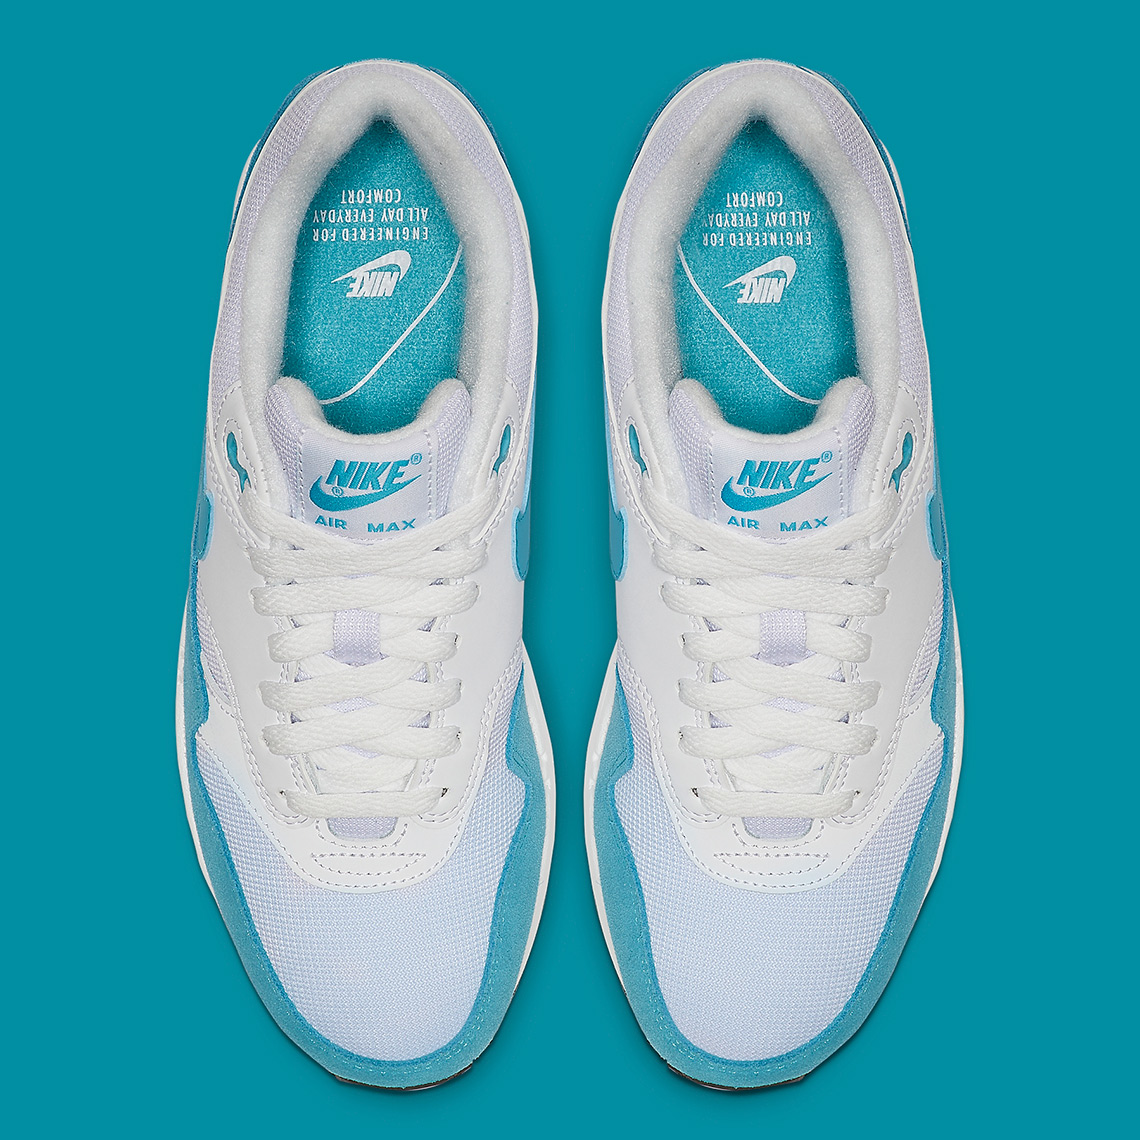 Nike Air Max 1 Atomic Teal 319986 117 Release Info